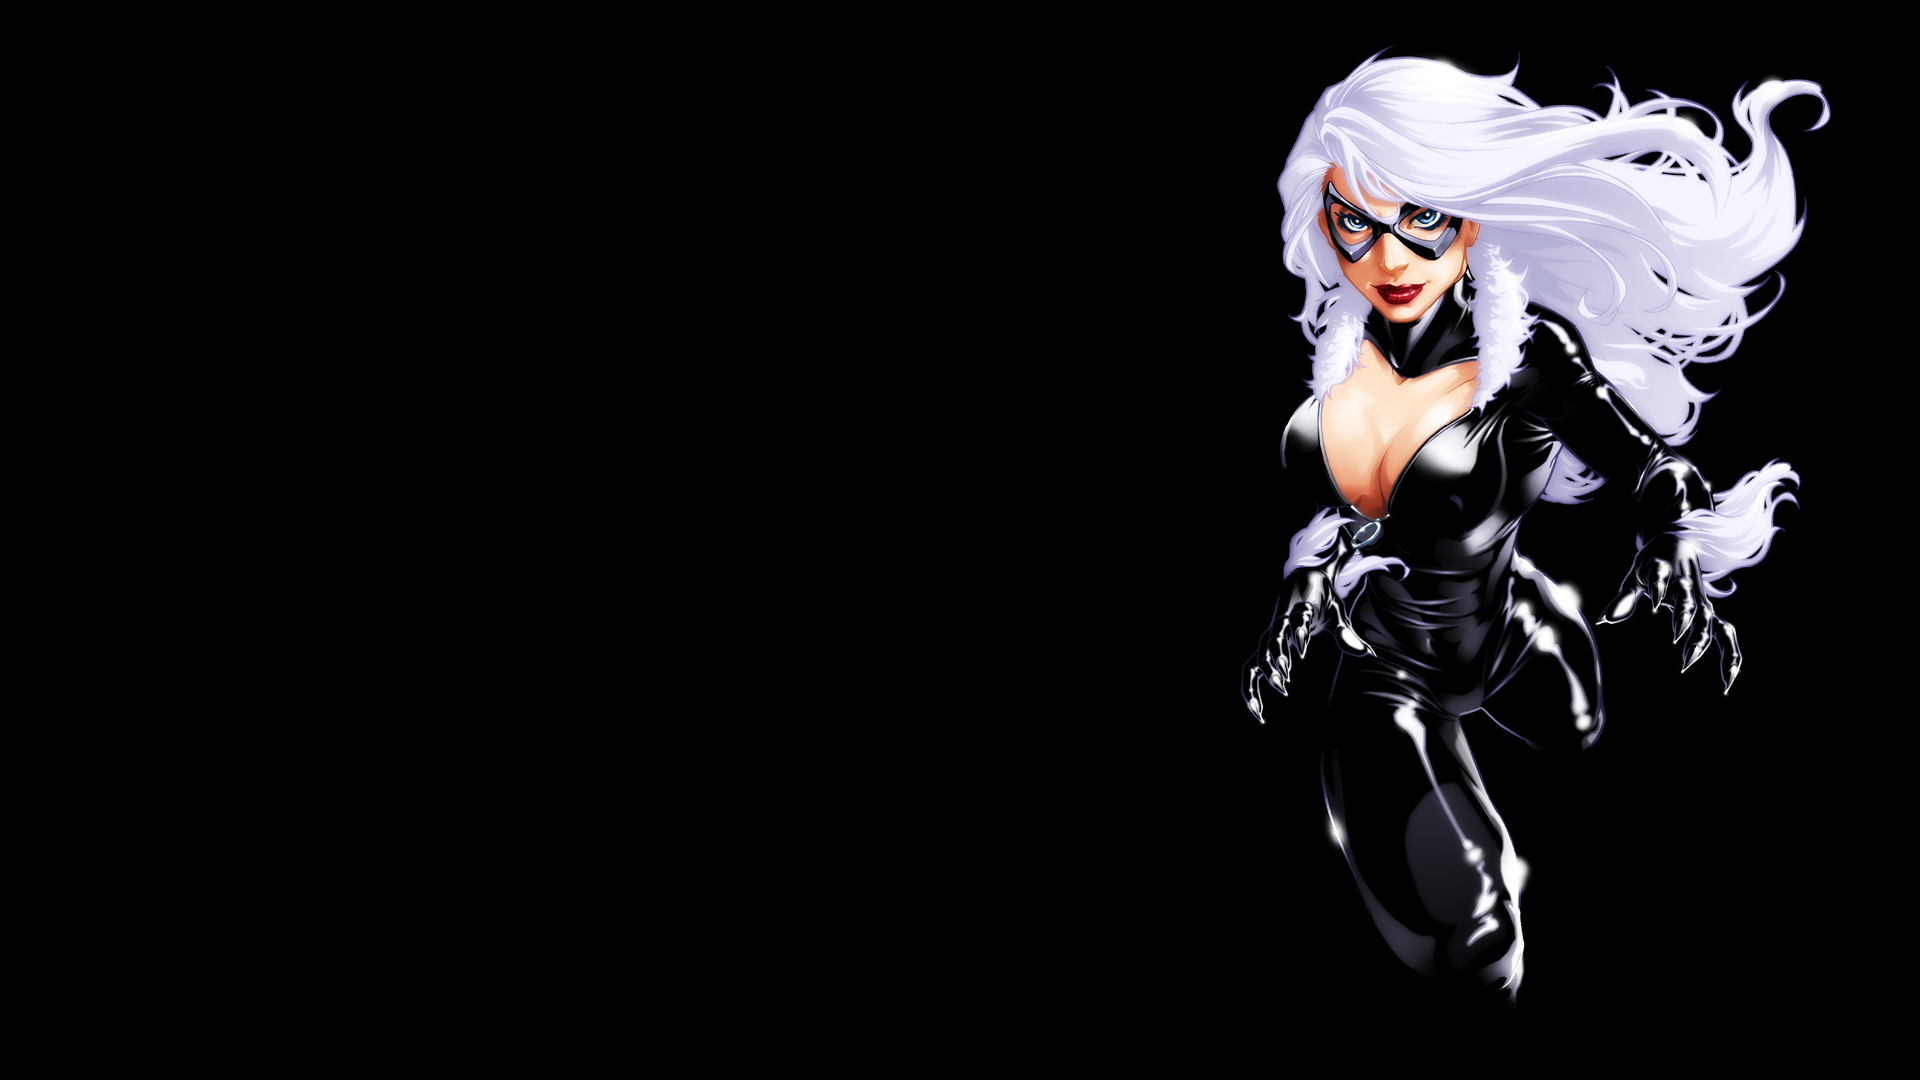 Marvel Comics Wallpaper 1920x1080 Marvel Comics Black Cat Comics 1920x1080